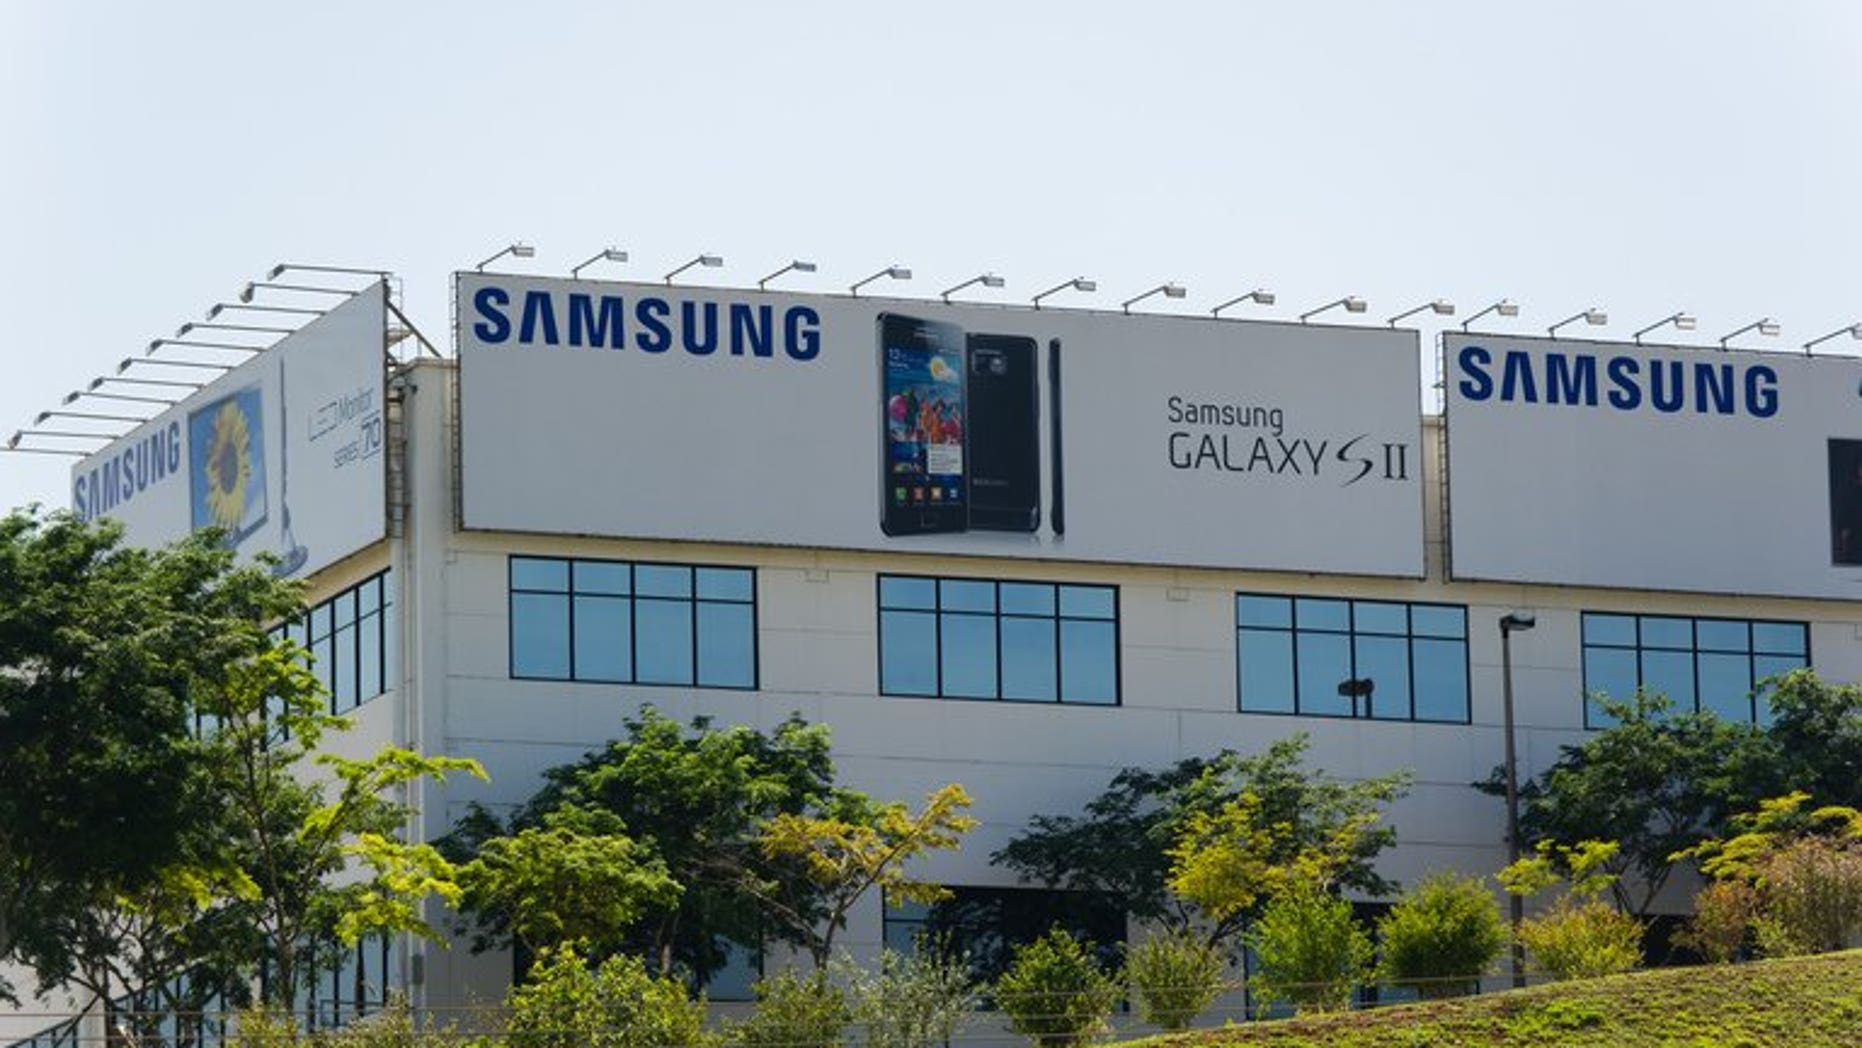 This file photo shows a general view of the premises of Samsung factory in Campinas, pictured on November 8, 2011. Brazil has filed a lawsuit against Samsung alleging poor working conditions at a factory in the Amazon and demanding more than $100 million in damages.